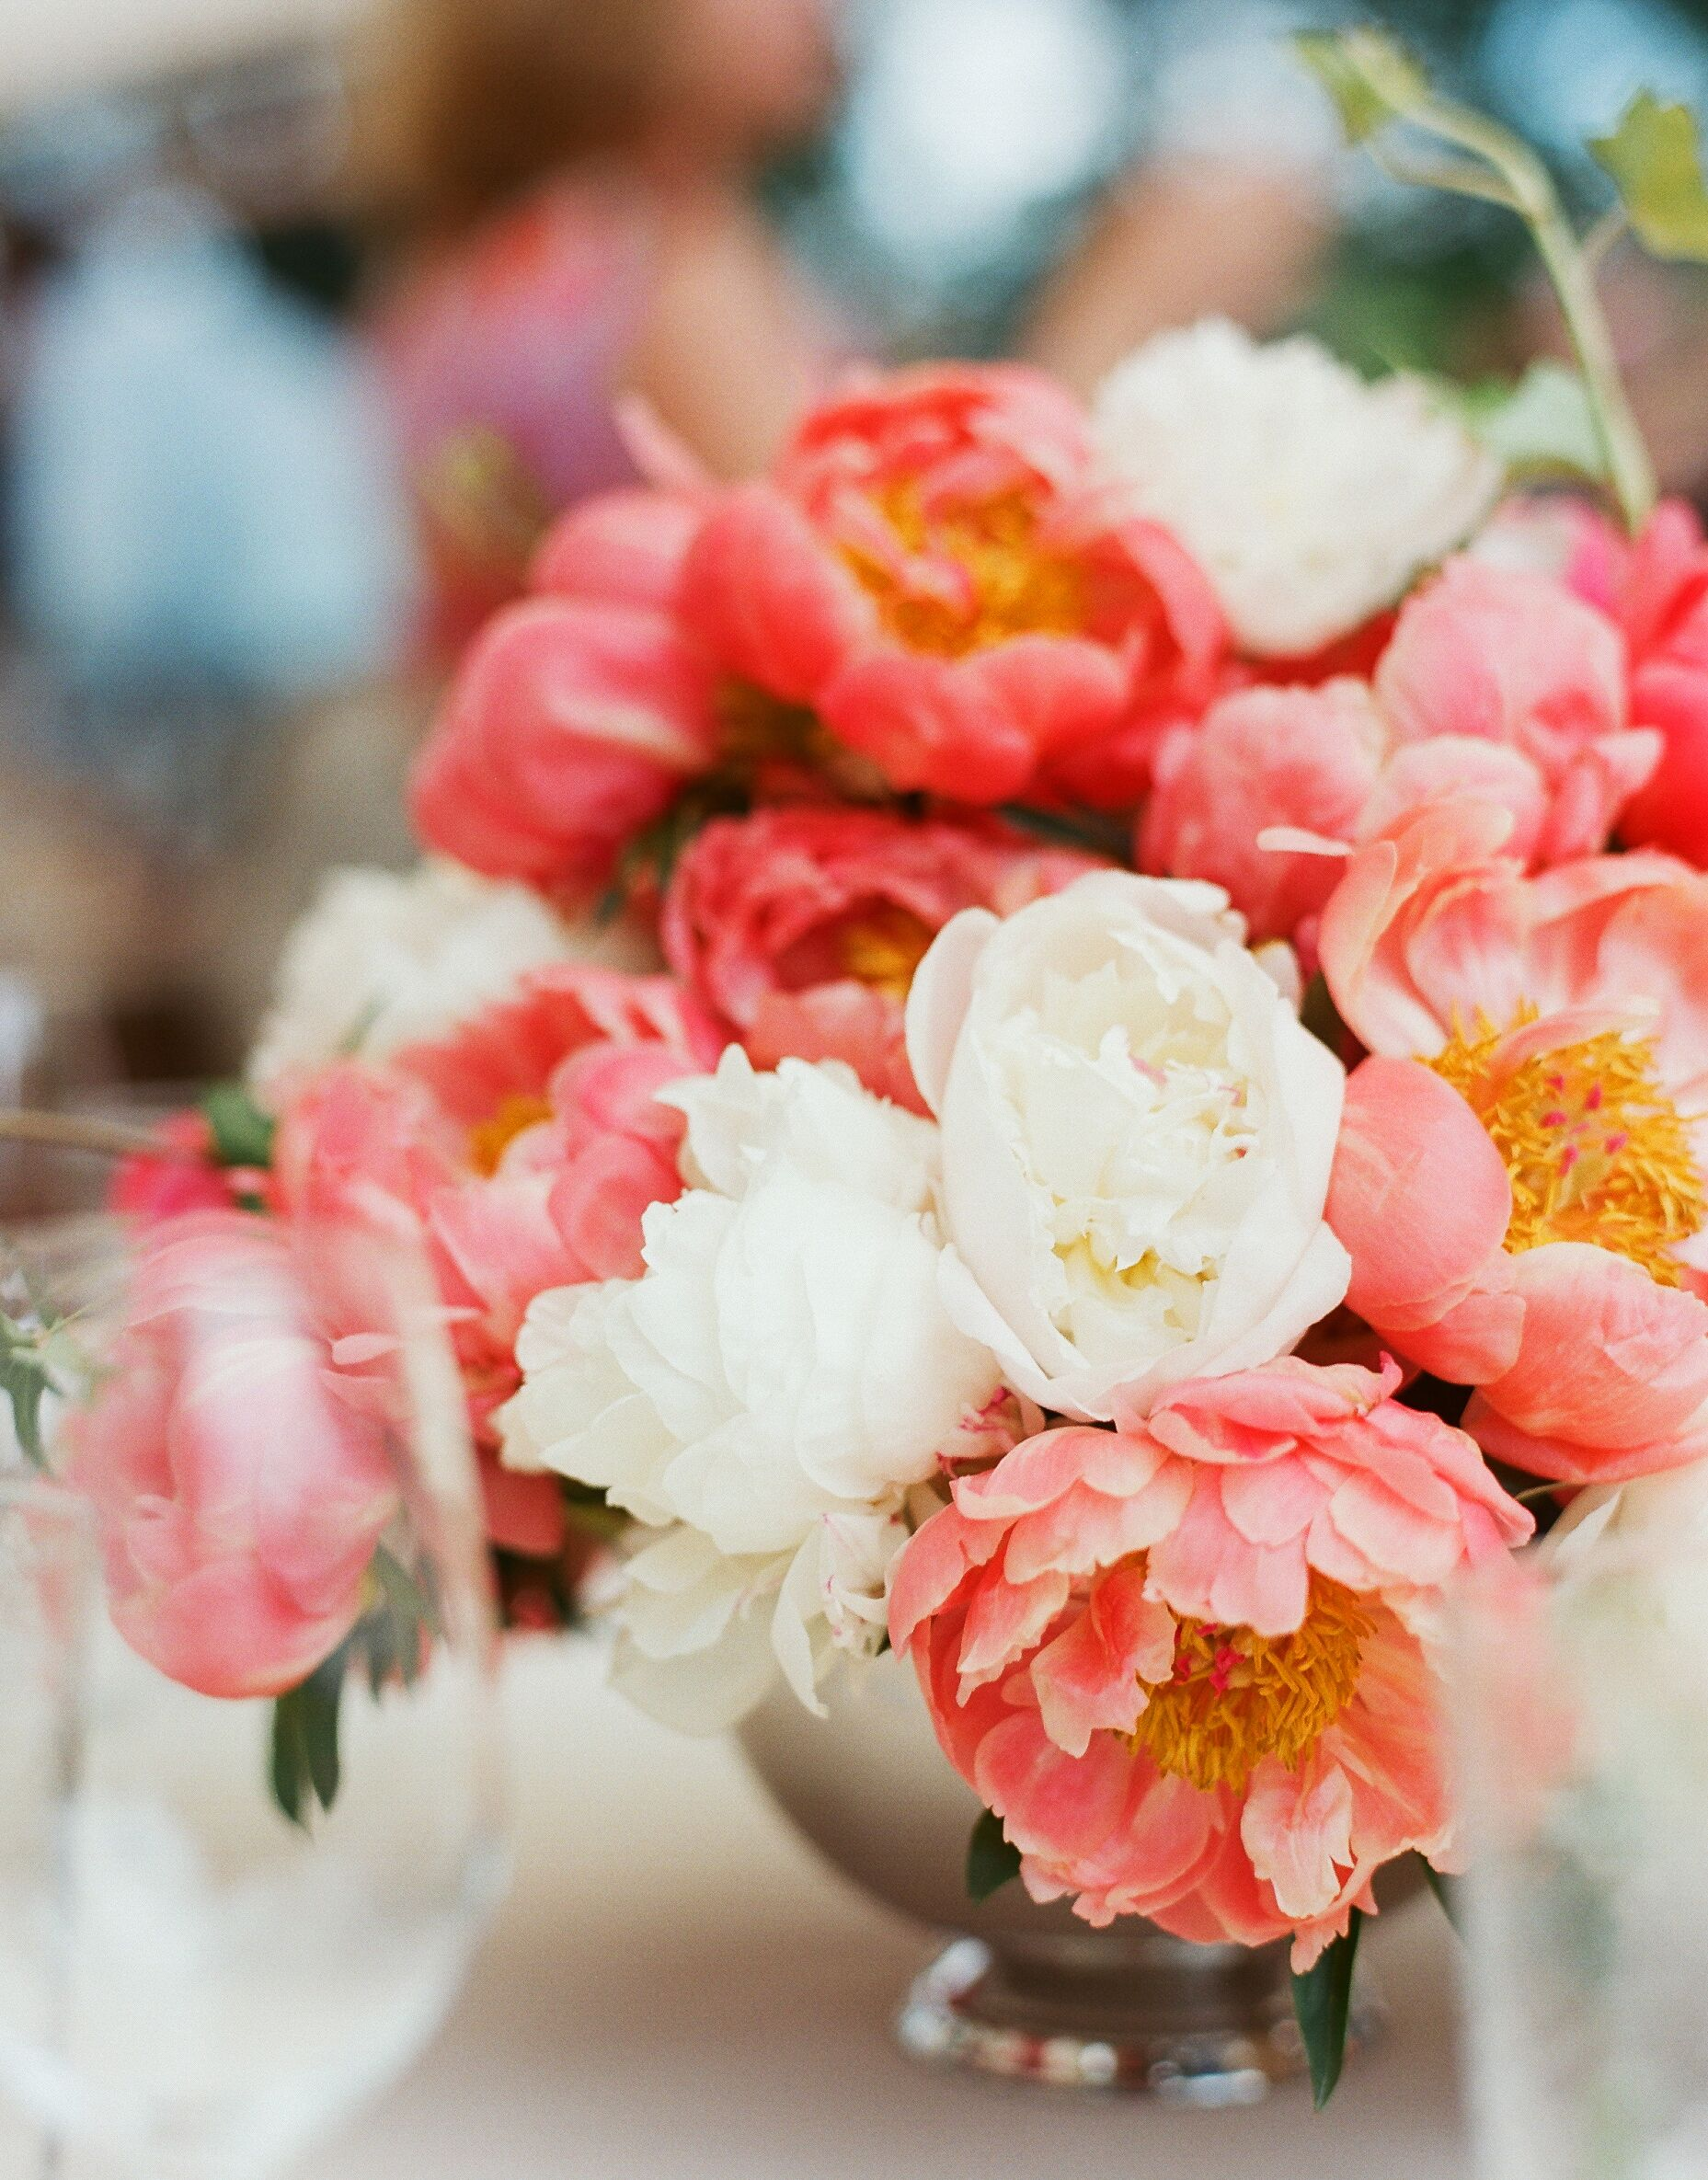 The Top 10 Most Popular Wedding Flowers